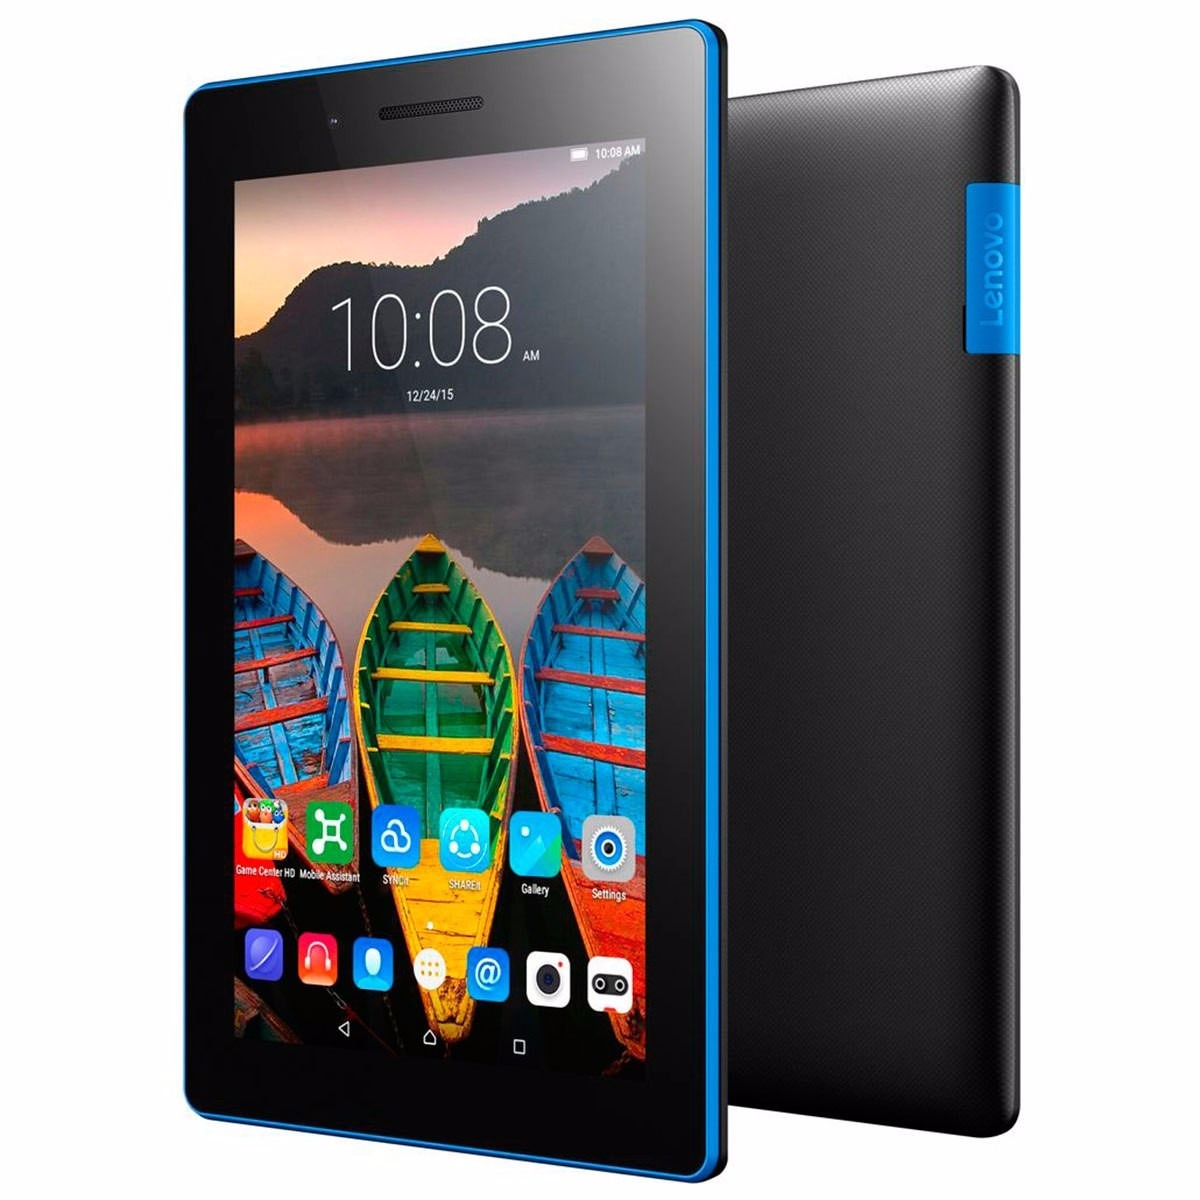 Tablet Lenovo Tb3 710f 7 Quad Core 8gb Exp A 64gb Android